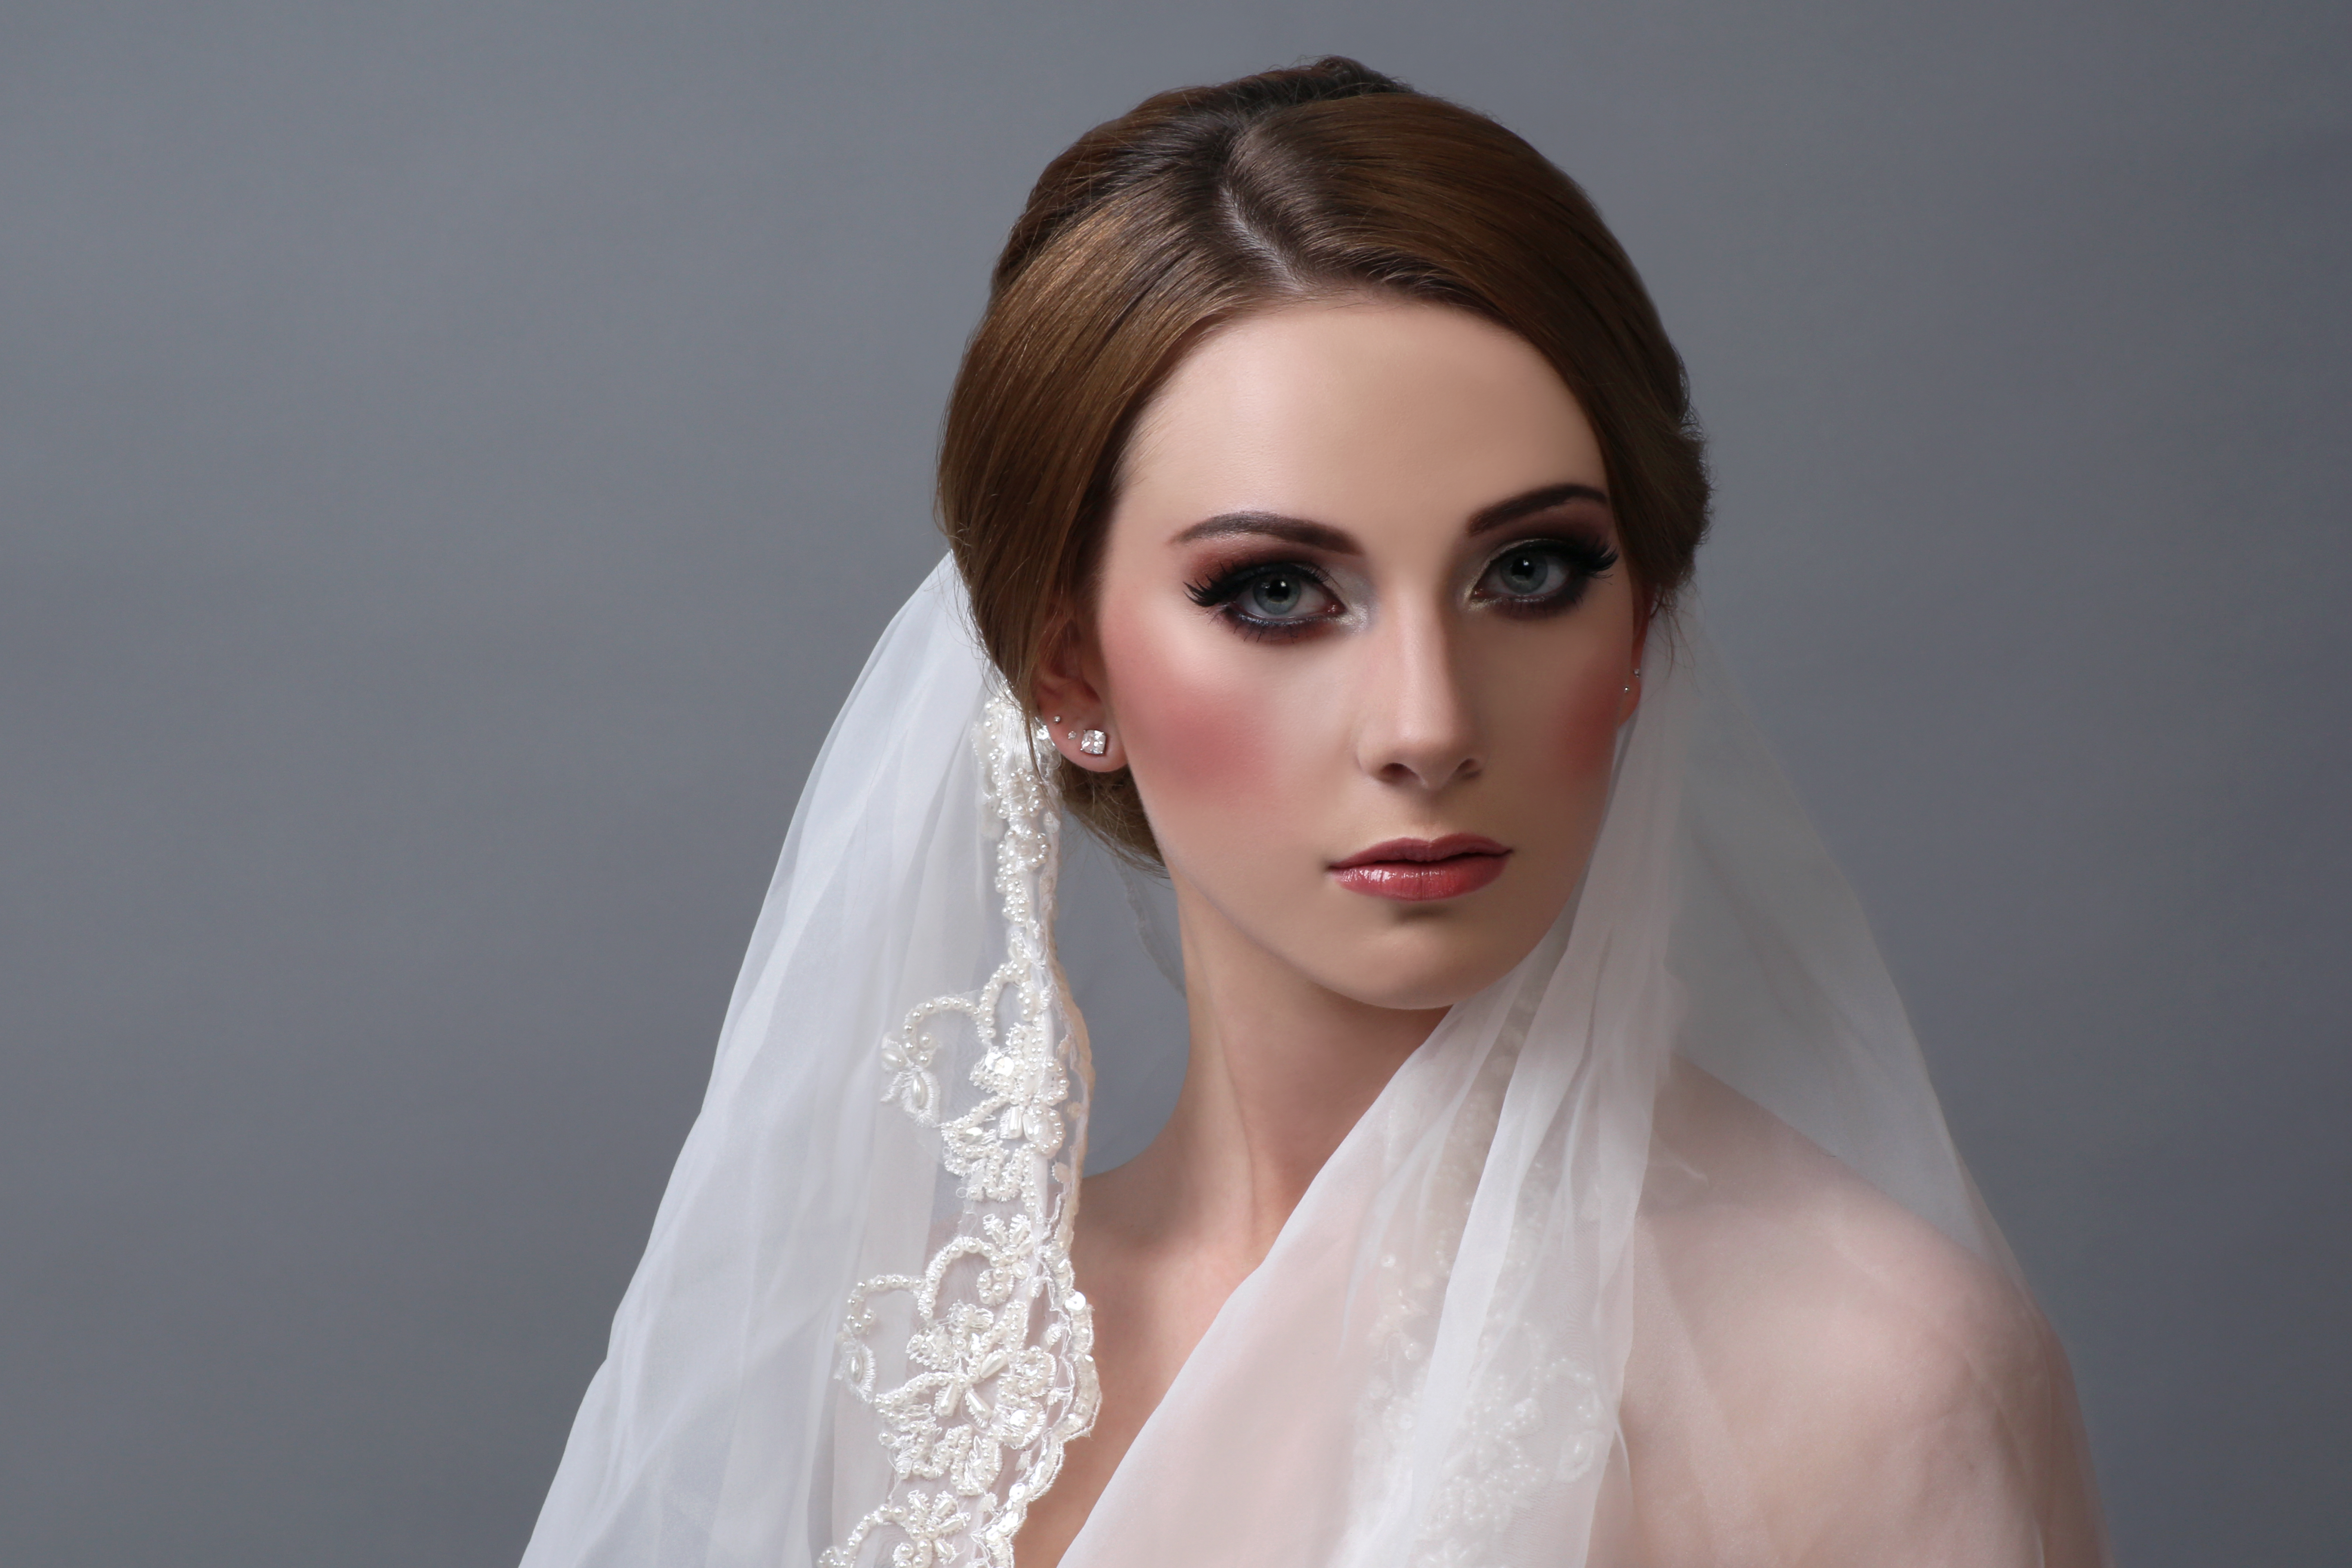 Bridal Hair and makeup-Jamie and Monika-photo Irvin Crea